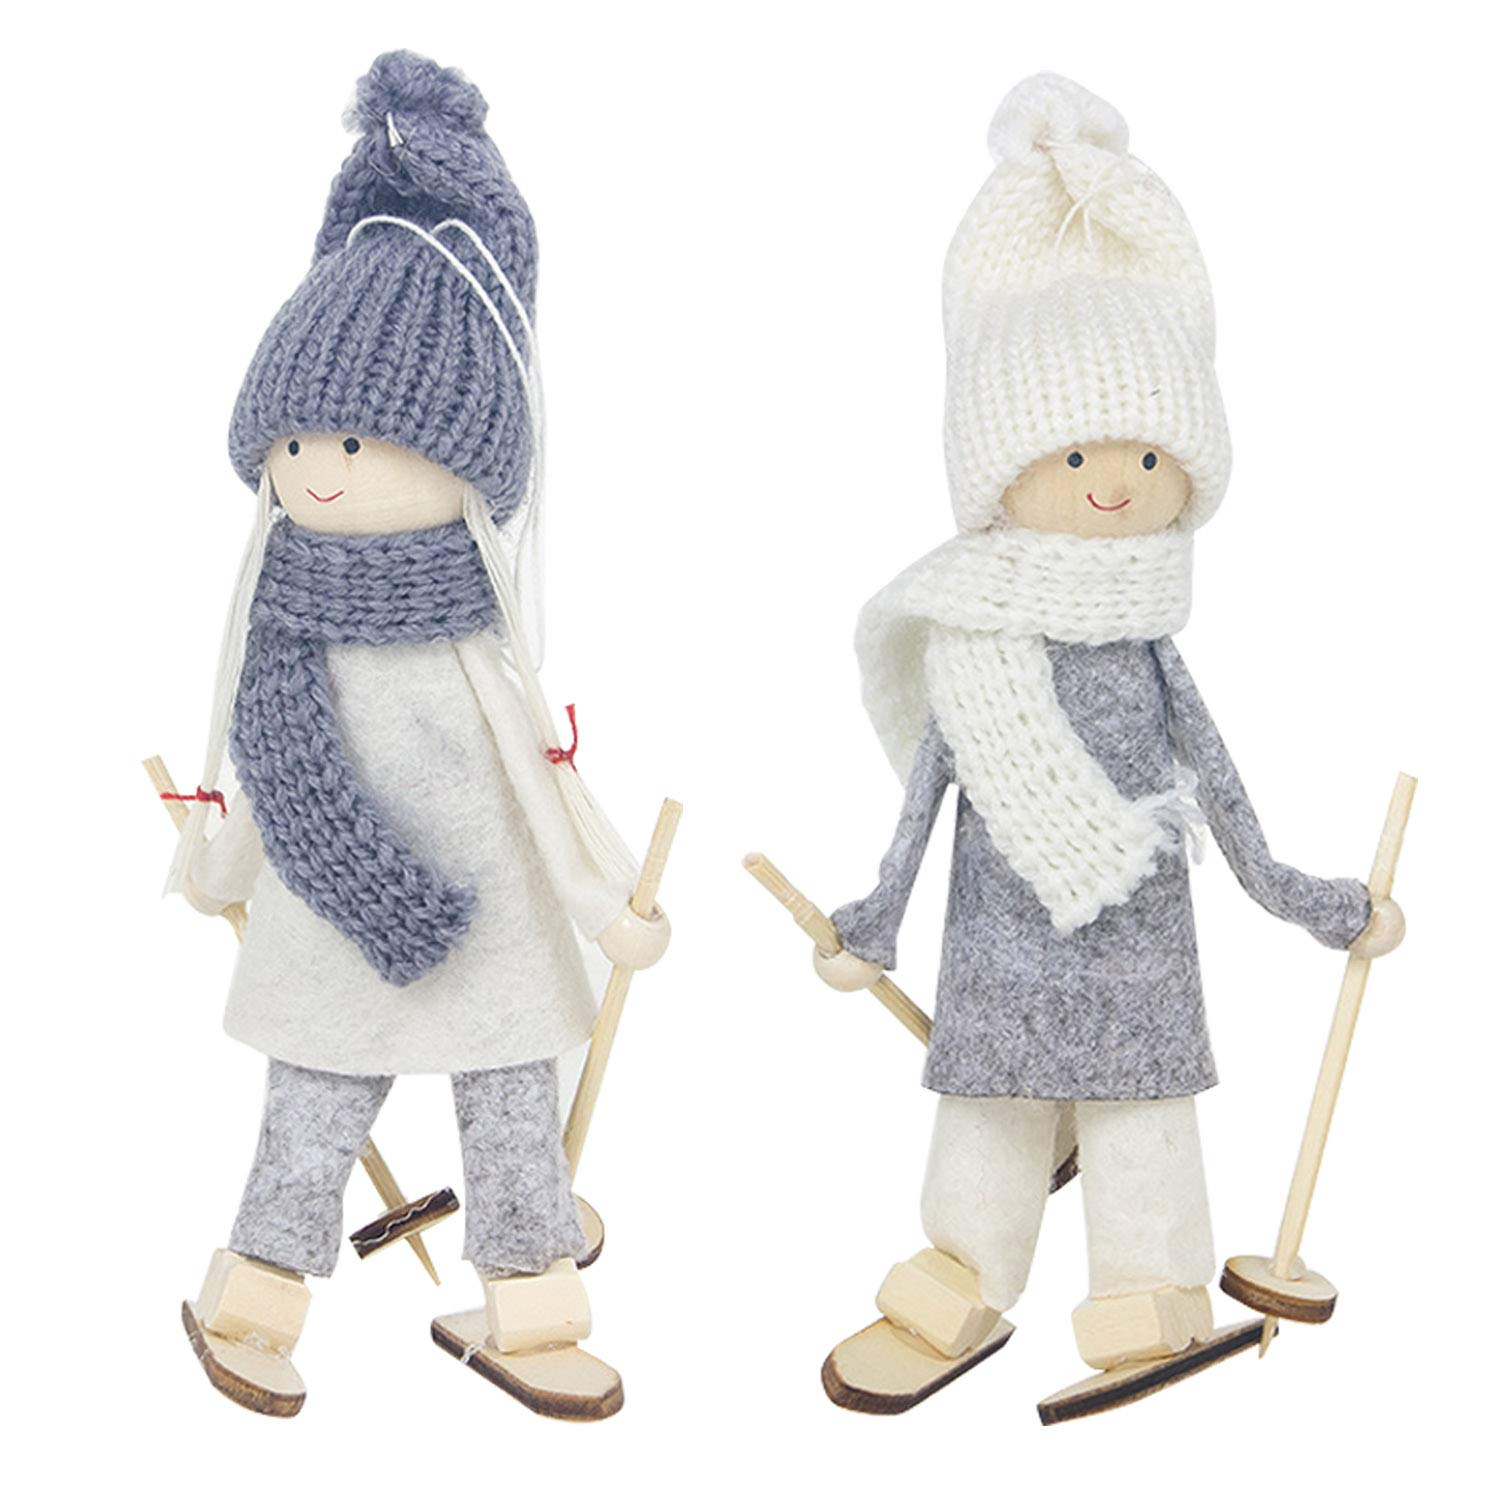 2pcs Small Cute Lovely Christmas Wool Ski Dolls Hanging Ornaments Home Xmas Christmas Tree Pendant Decorations Style B Migavan